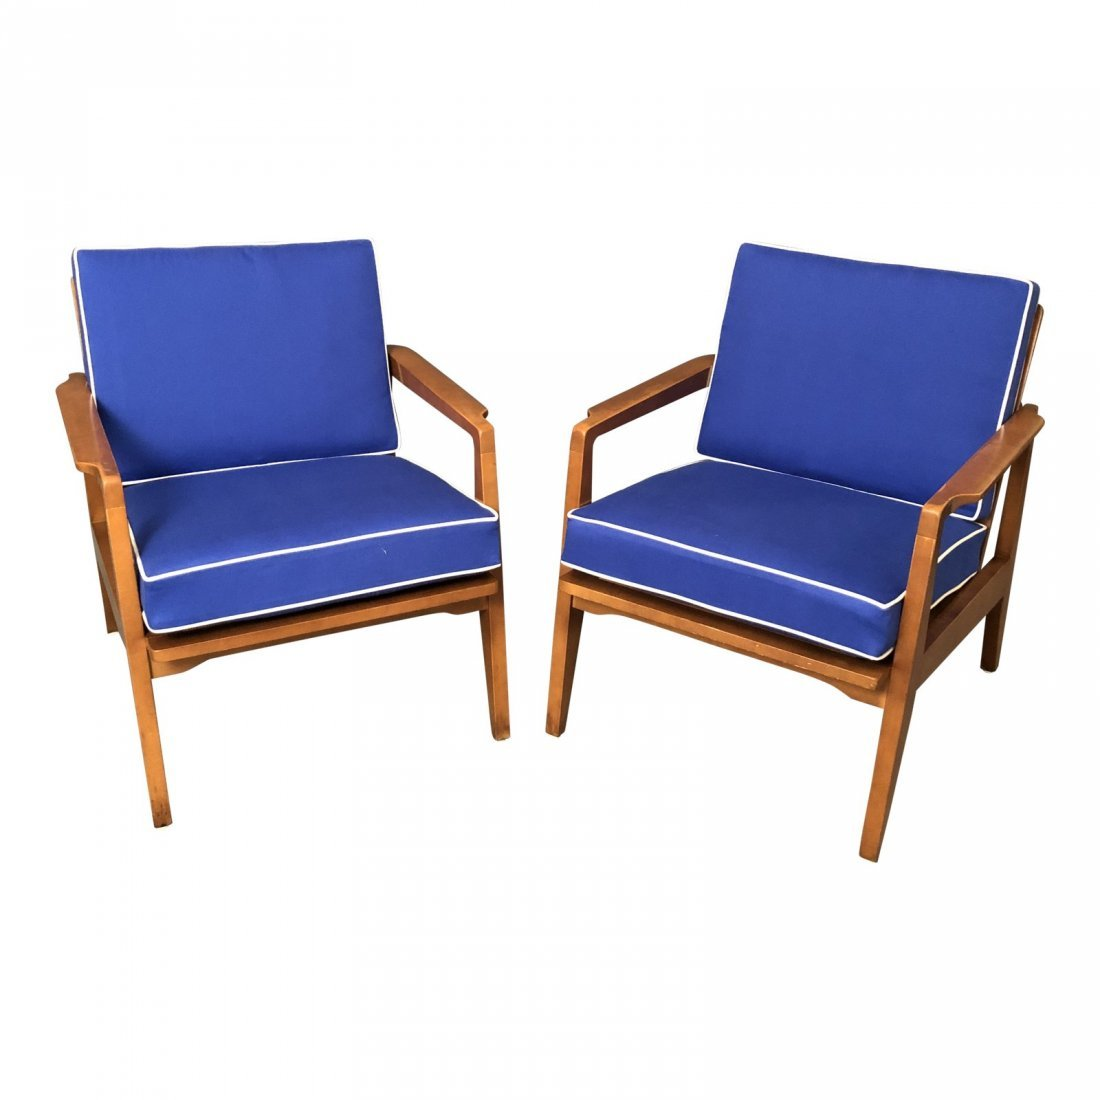 Mid-Century Danish Modern Arm Chairs With Blue Cushions